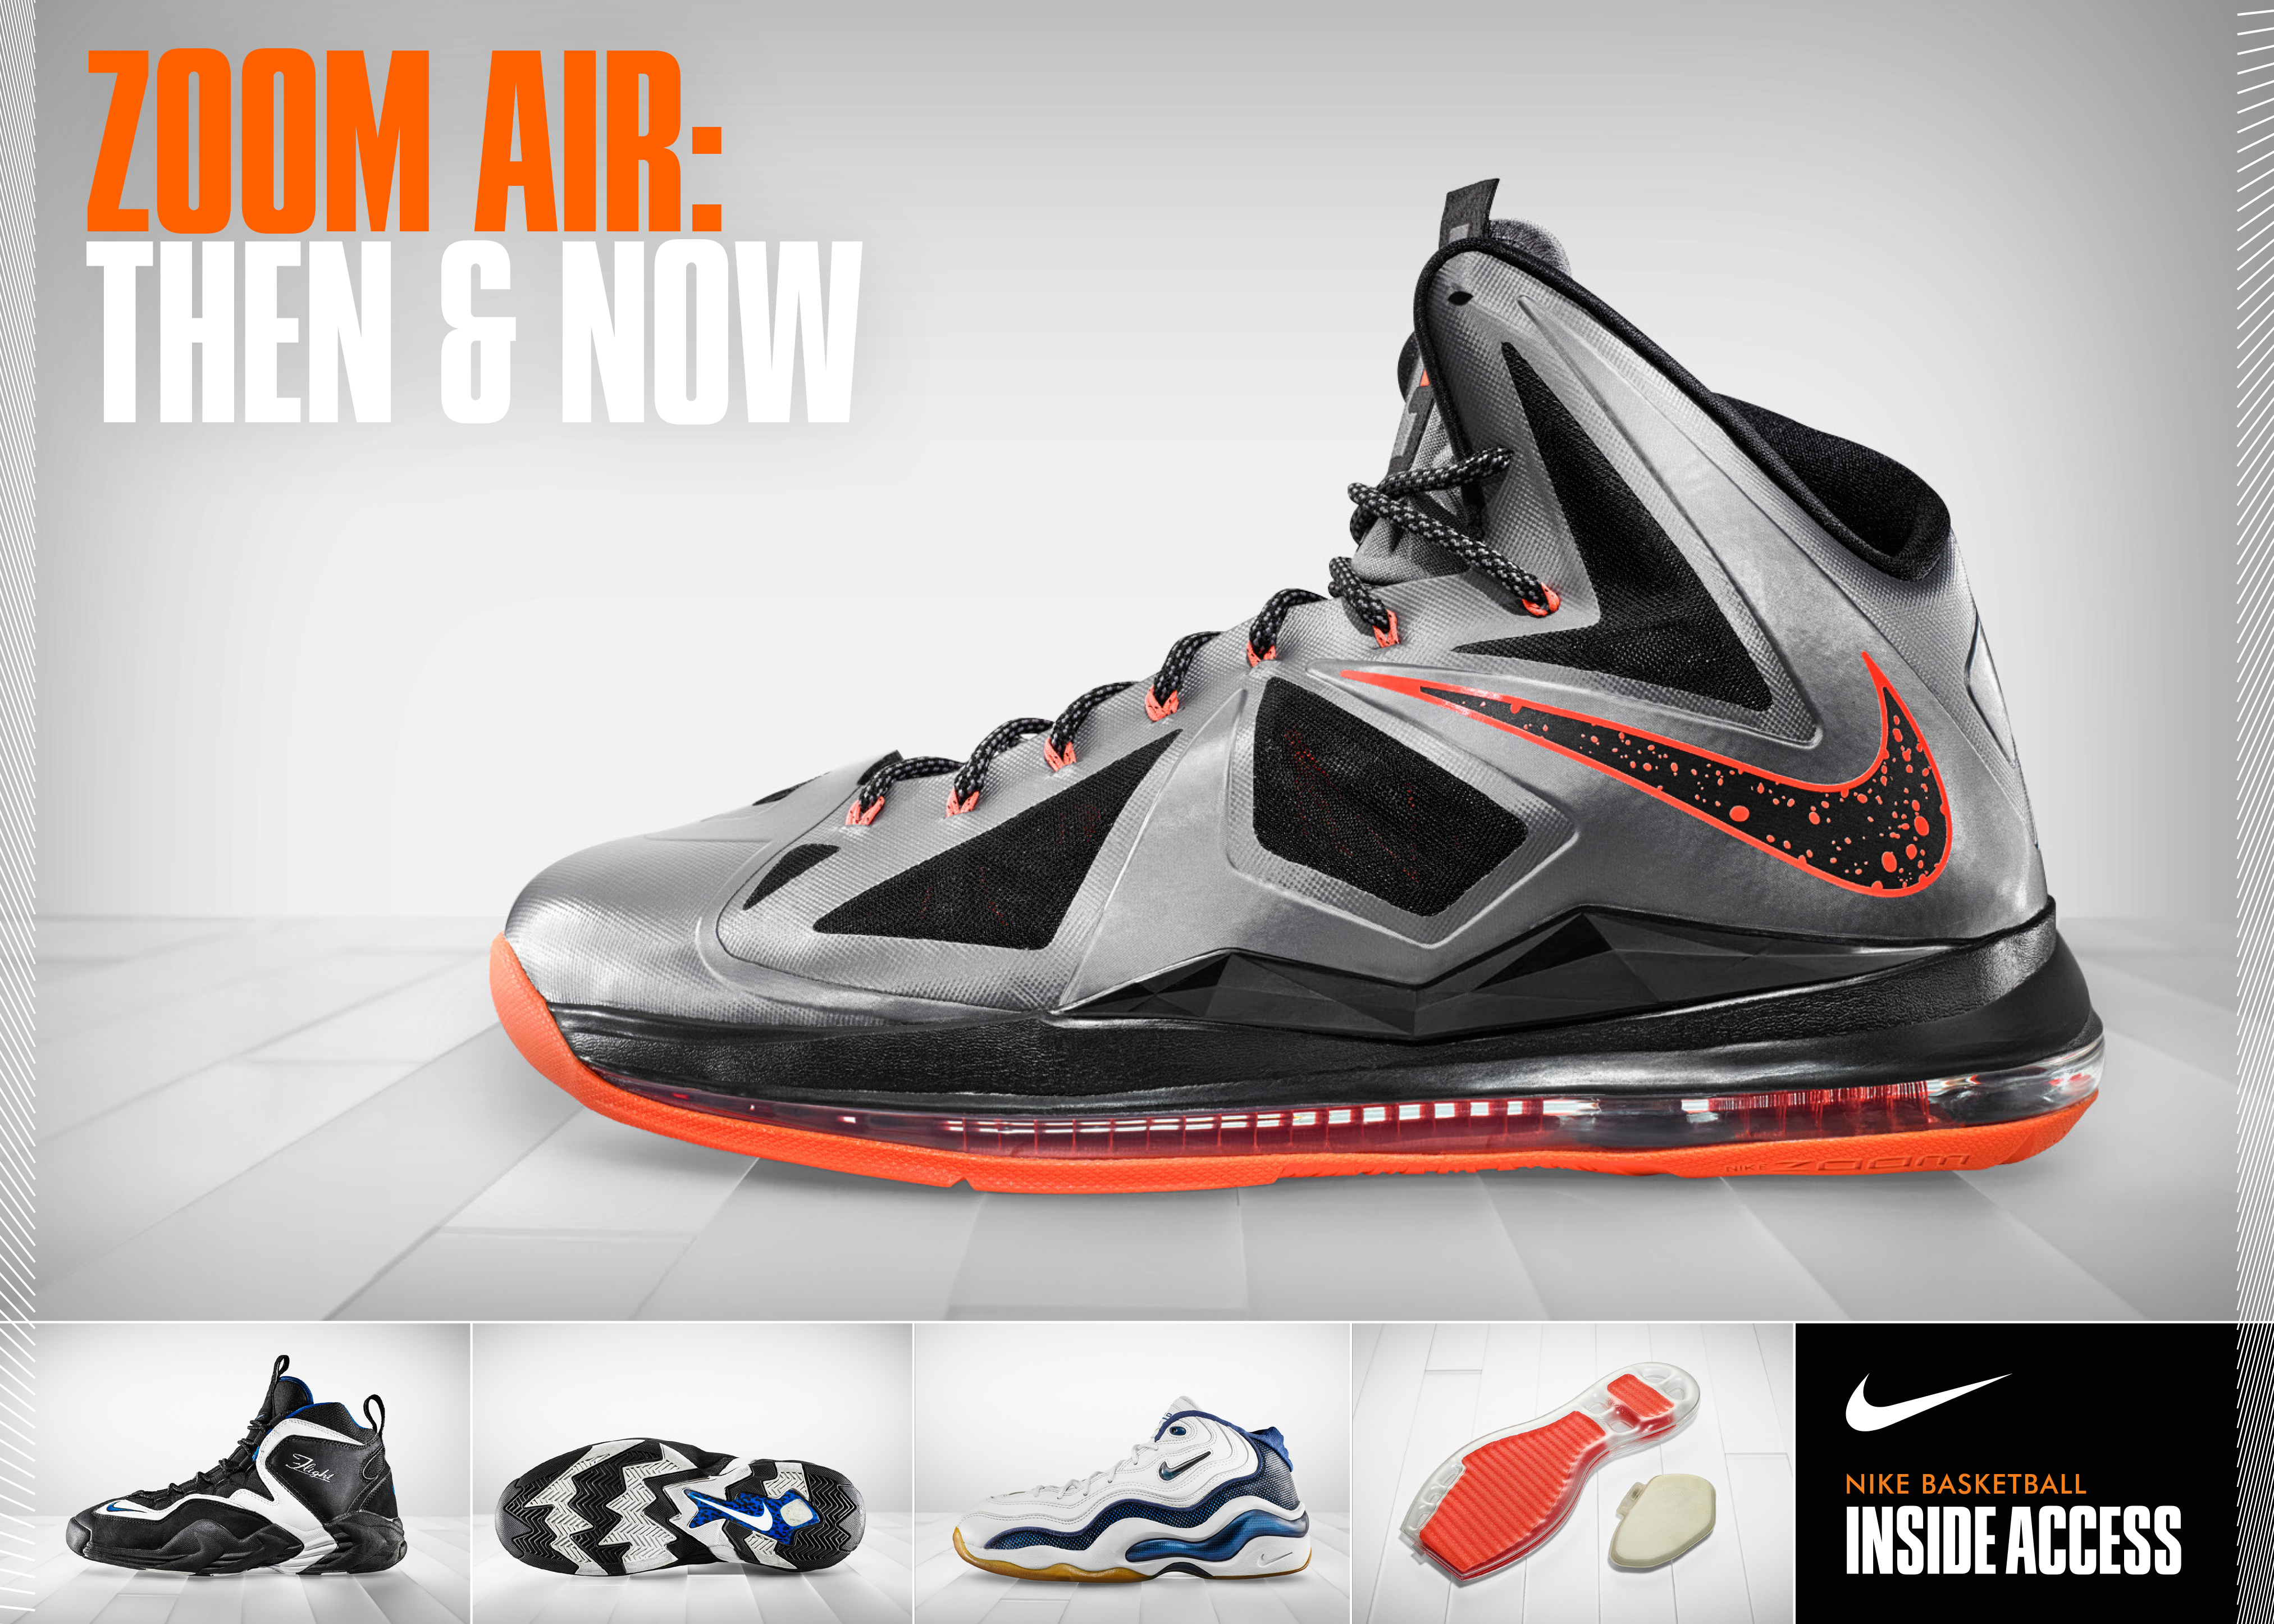 Nike News - Lebron James News